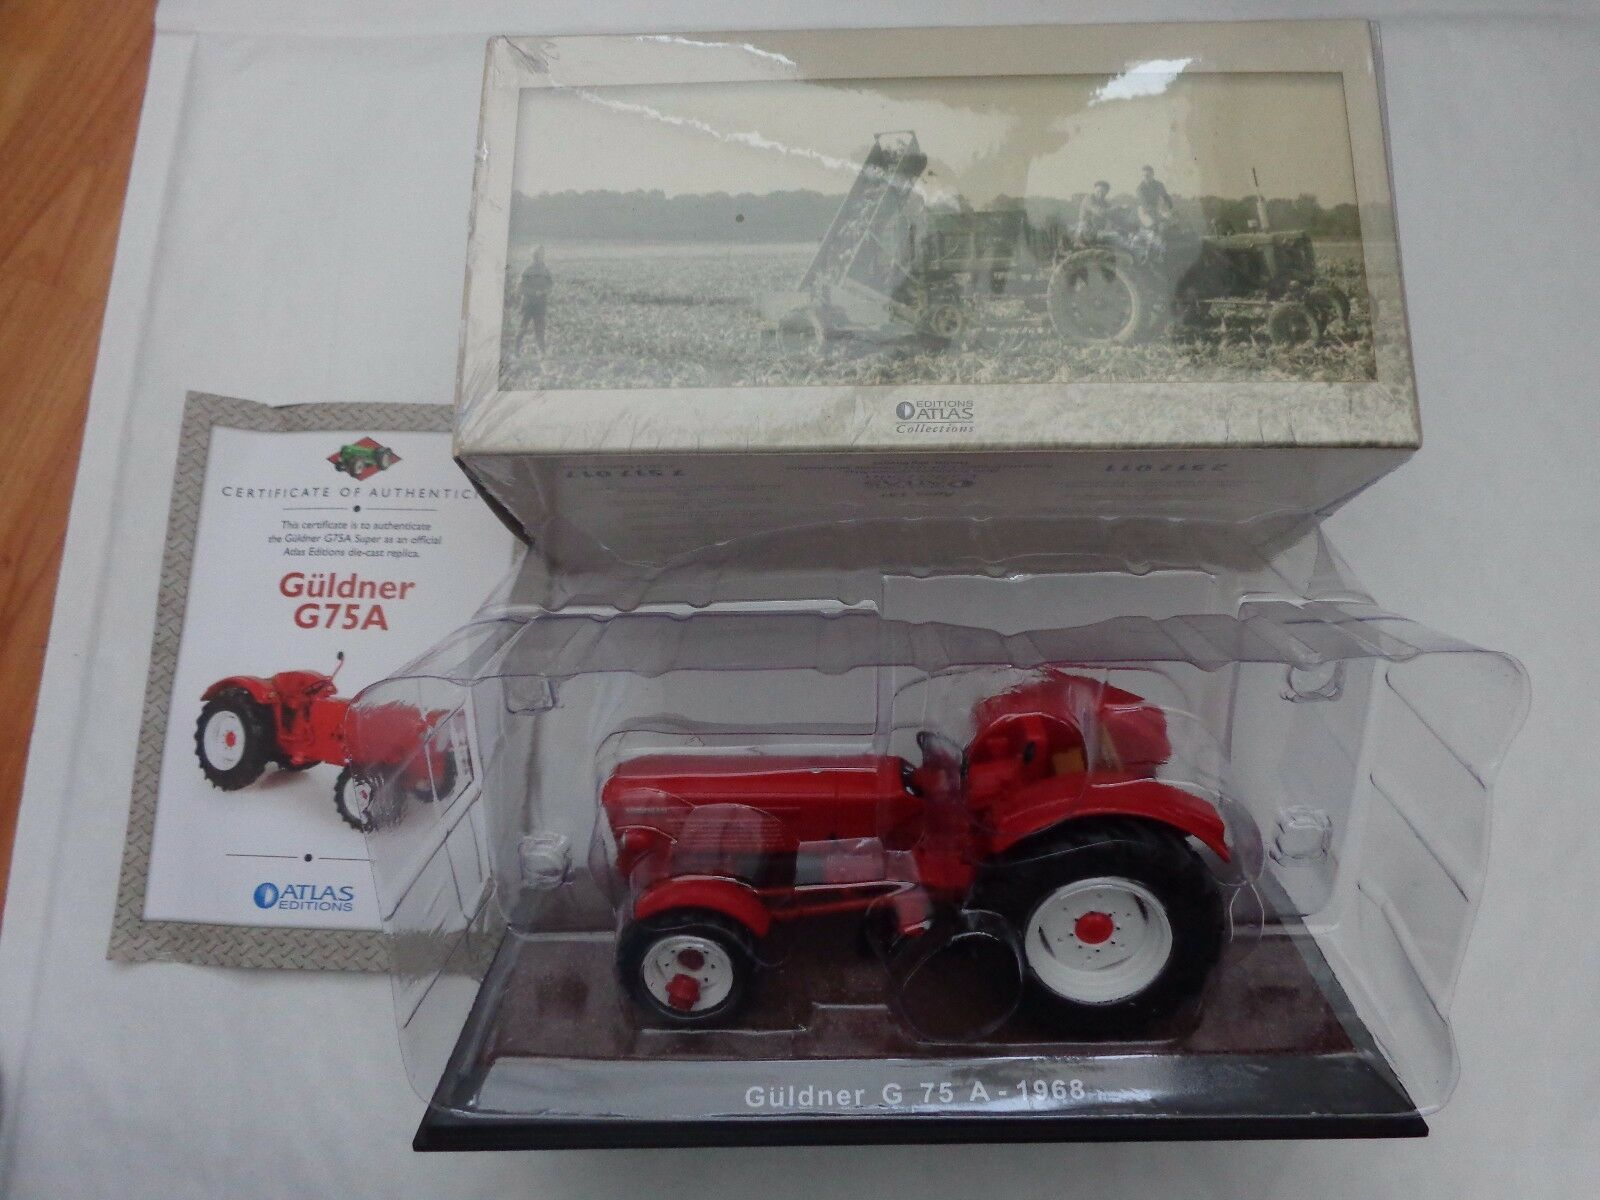 ATLAS EDITIONS 1 32 CLASSIC 1968 GULDNER G 75 A - DIECAST MODEL TRACTOR